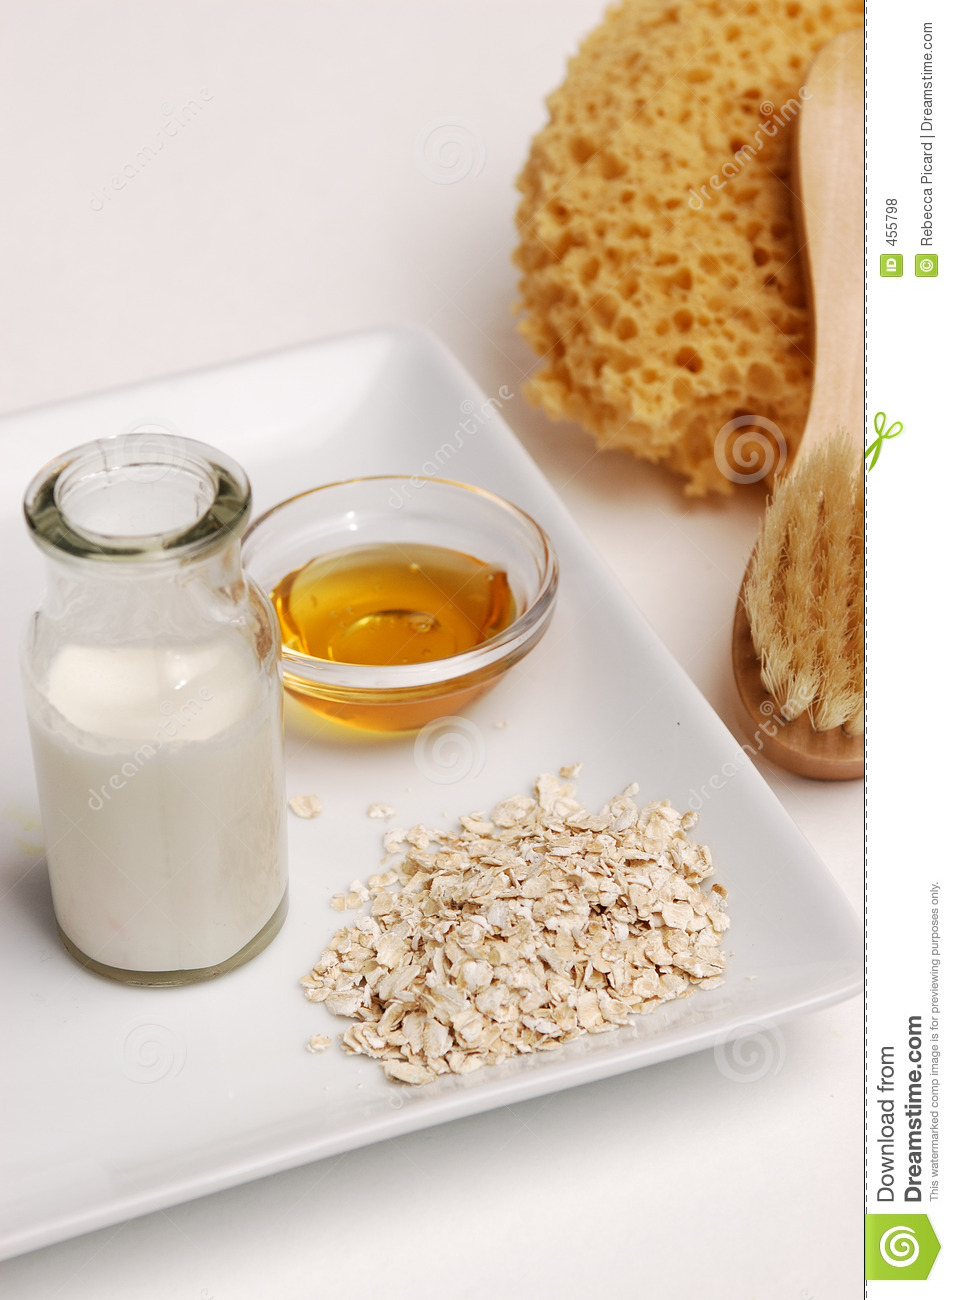 Oatmeal, Milk And Honey Royalty Free Stock Photos - Image: 455798